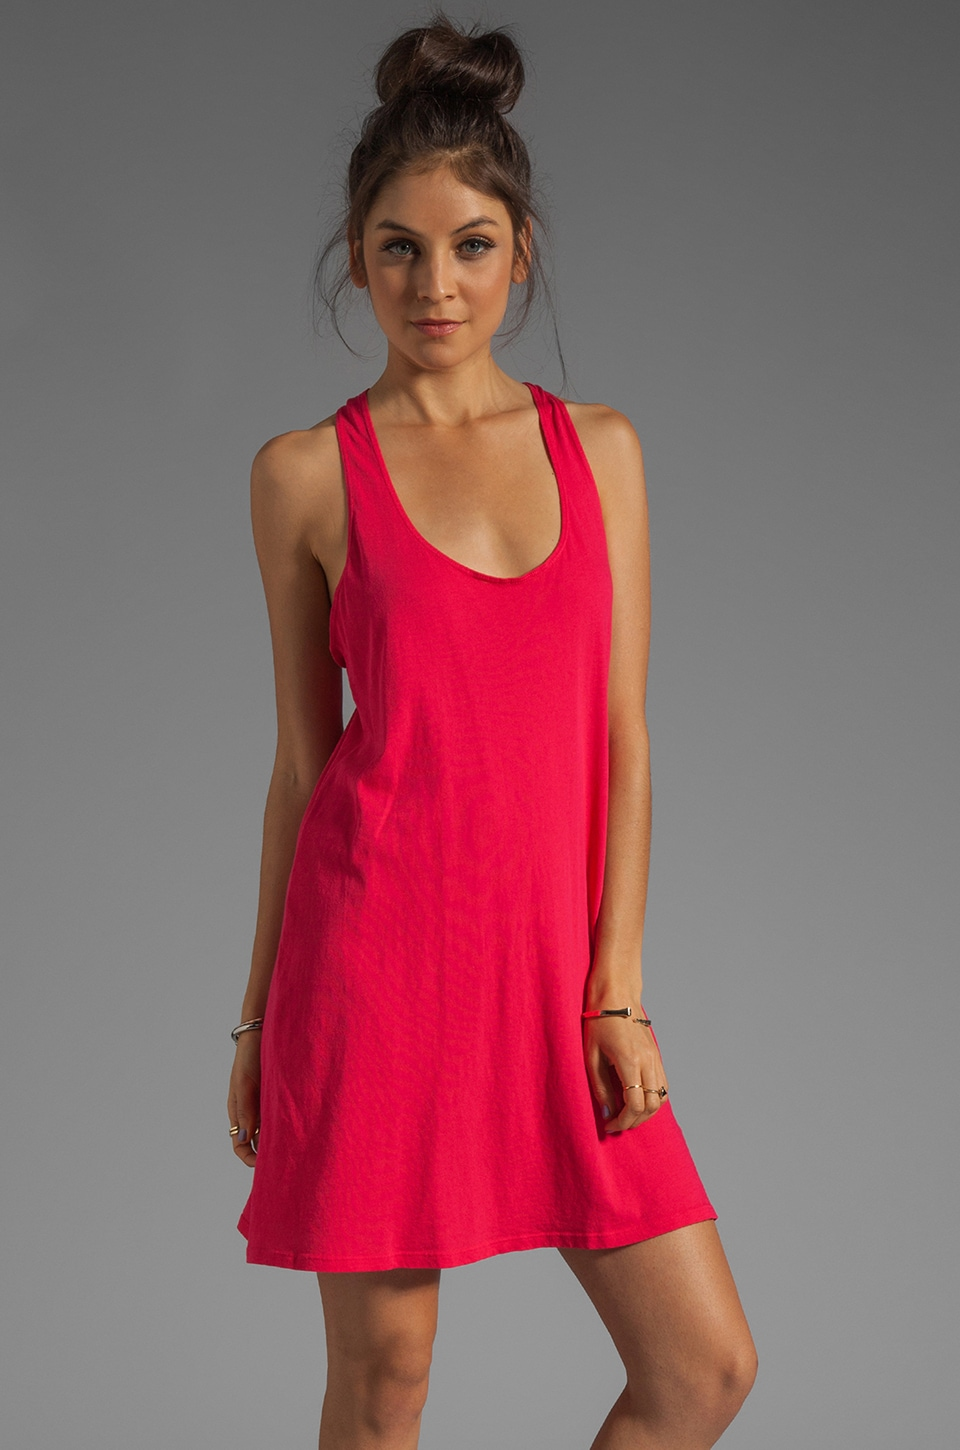 C&C California Tie Back Tank Dress in Ruby